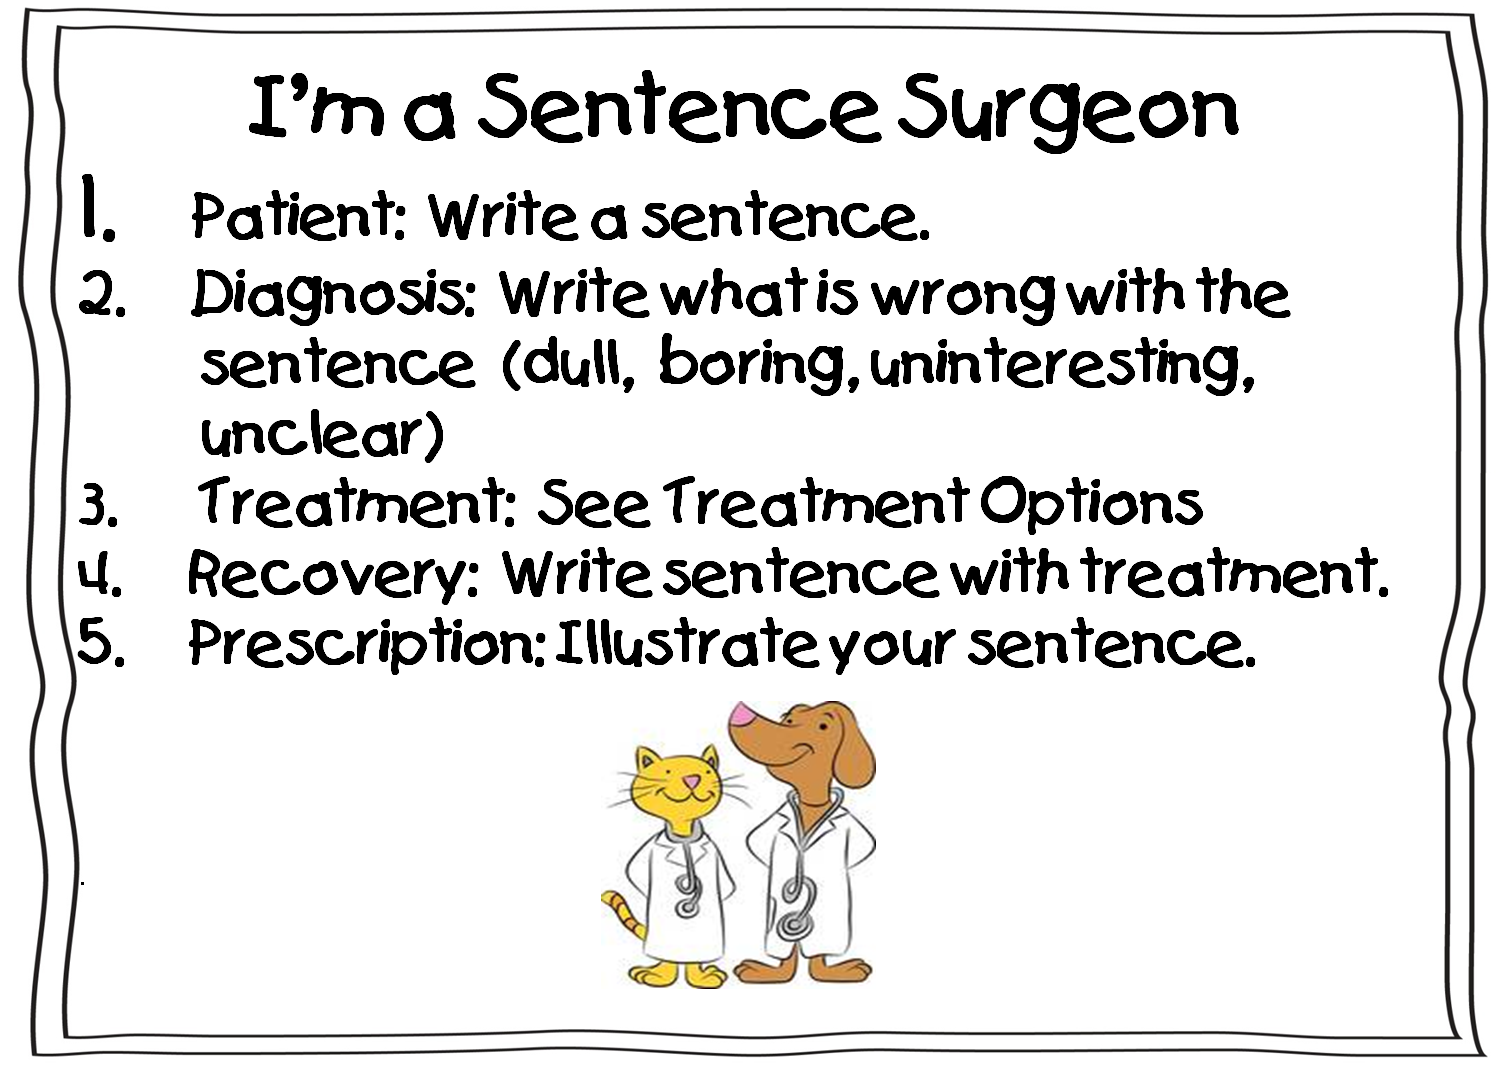 Sentence Surgeon Game: A cute game of pretend that